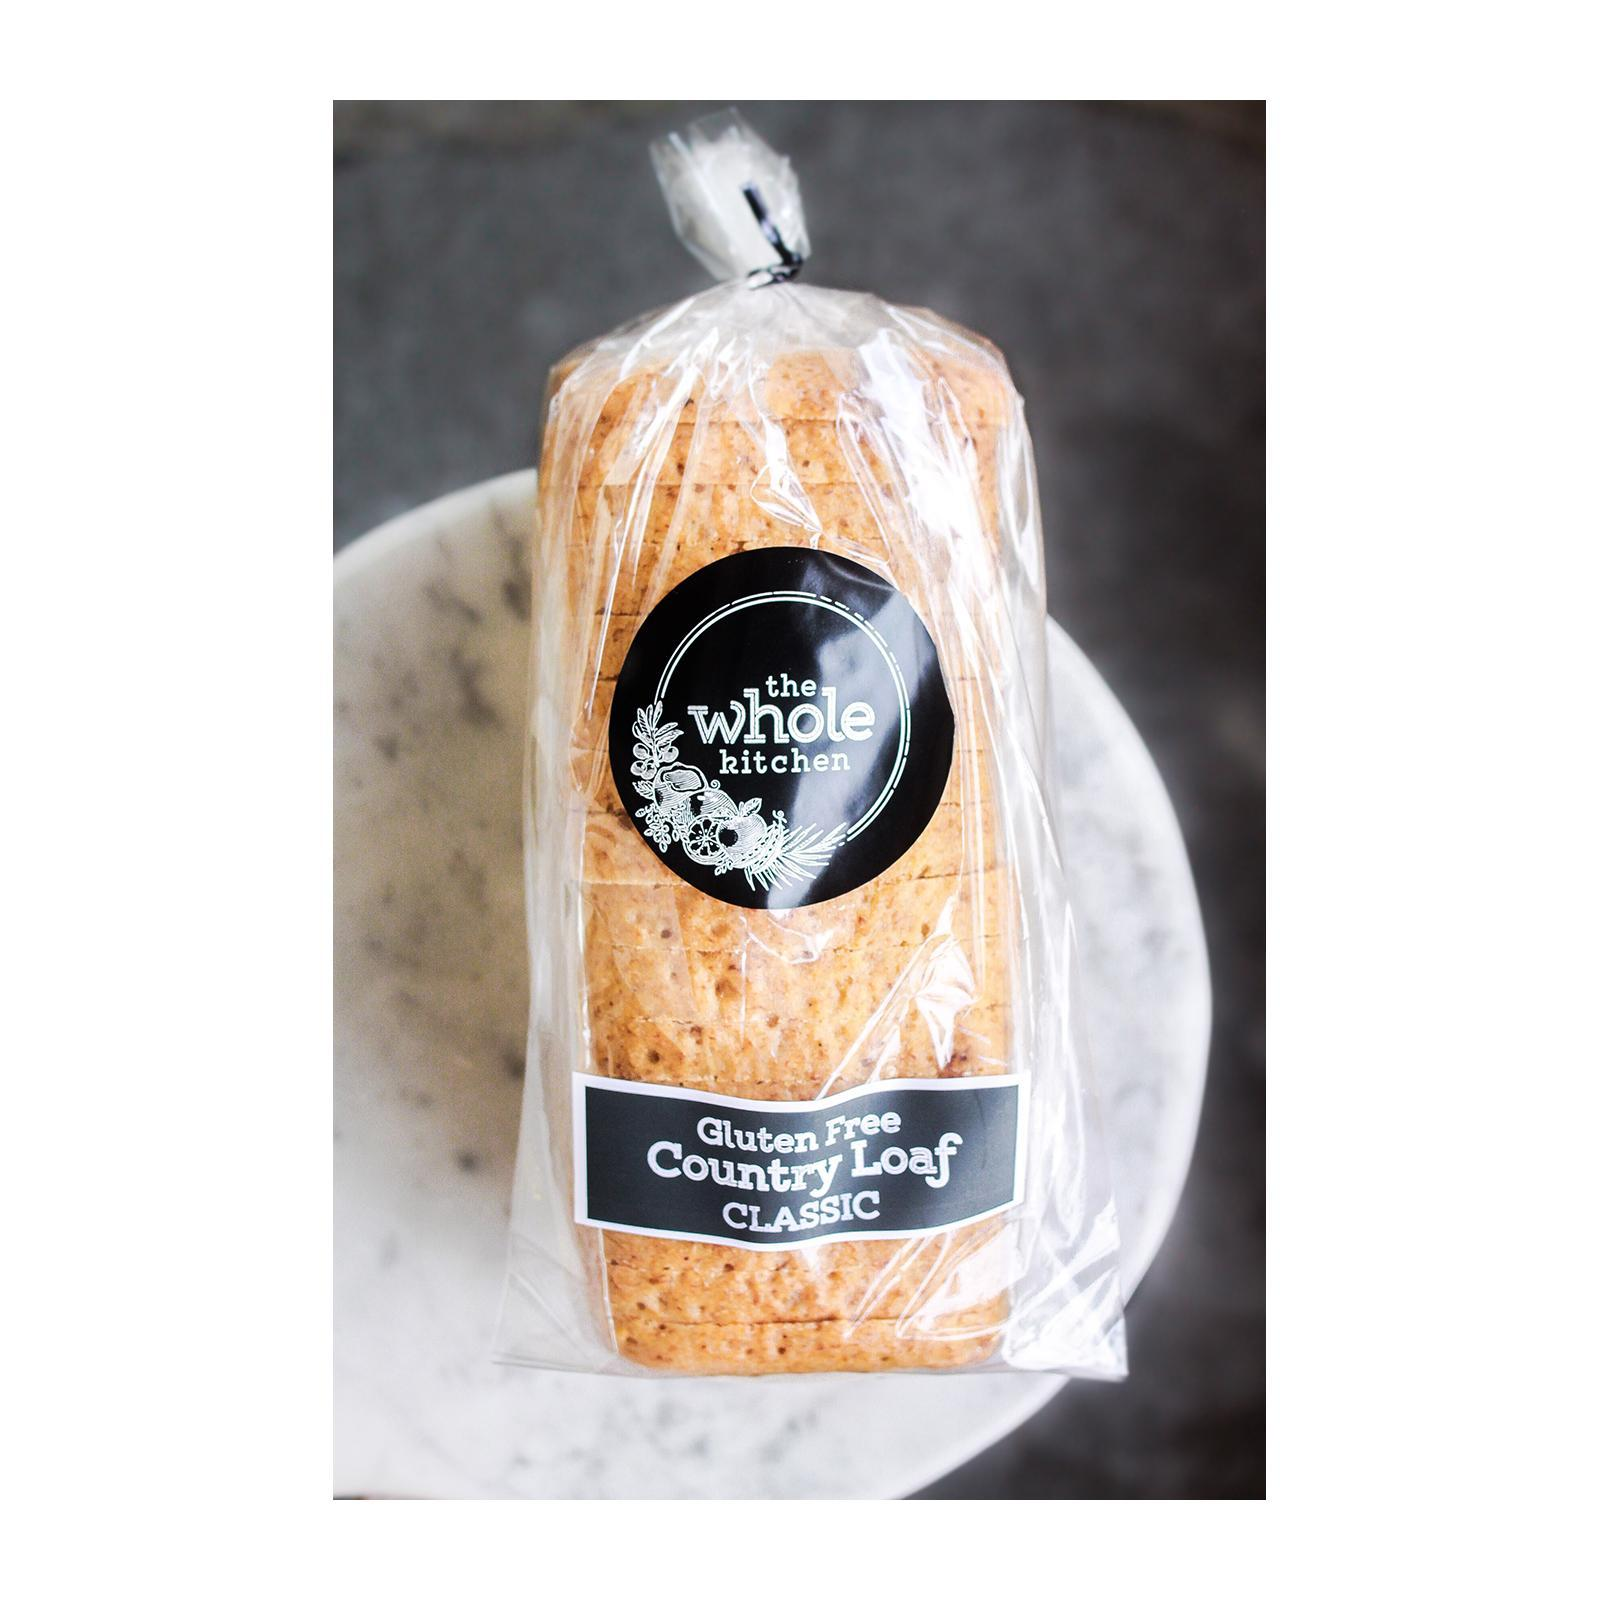 The Whole Kitchen Gluten Free Country Loaf - CLASSIC - Frozen